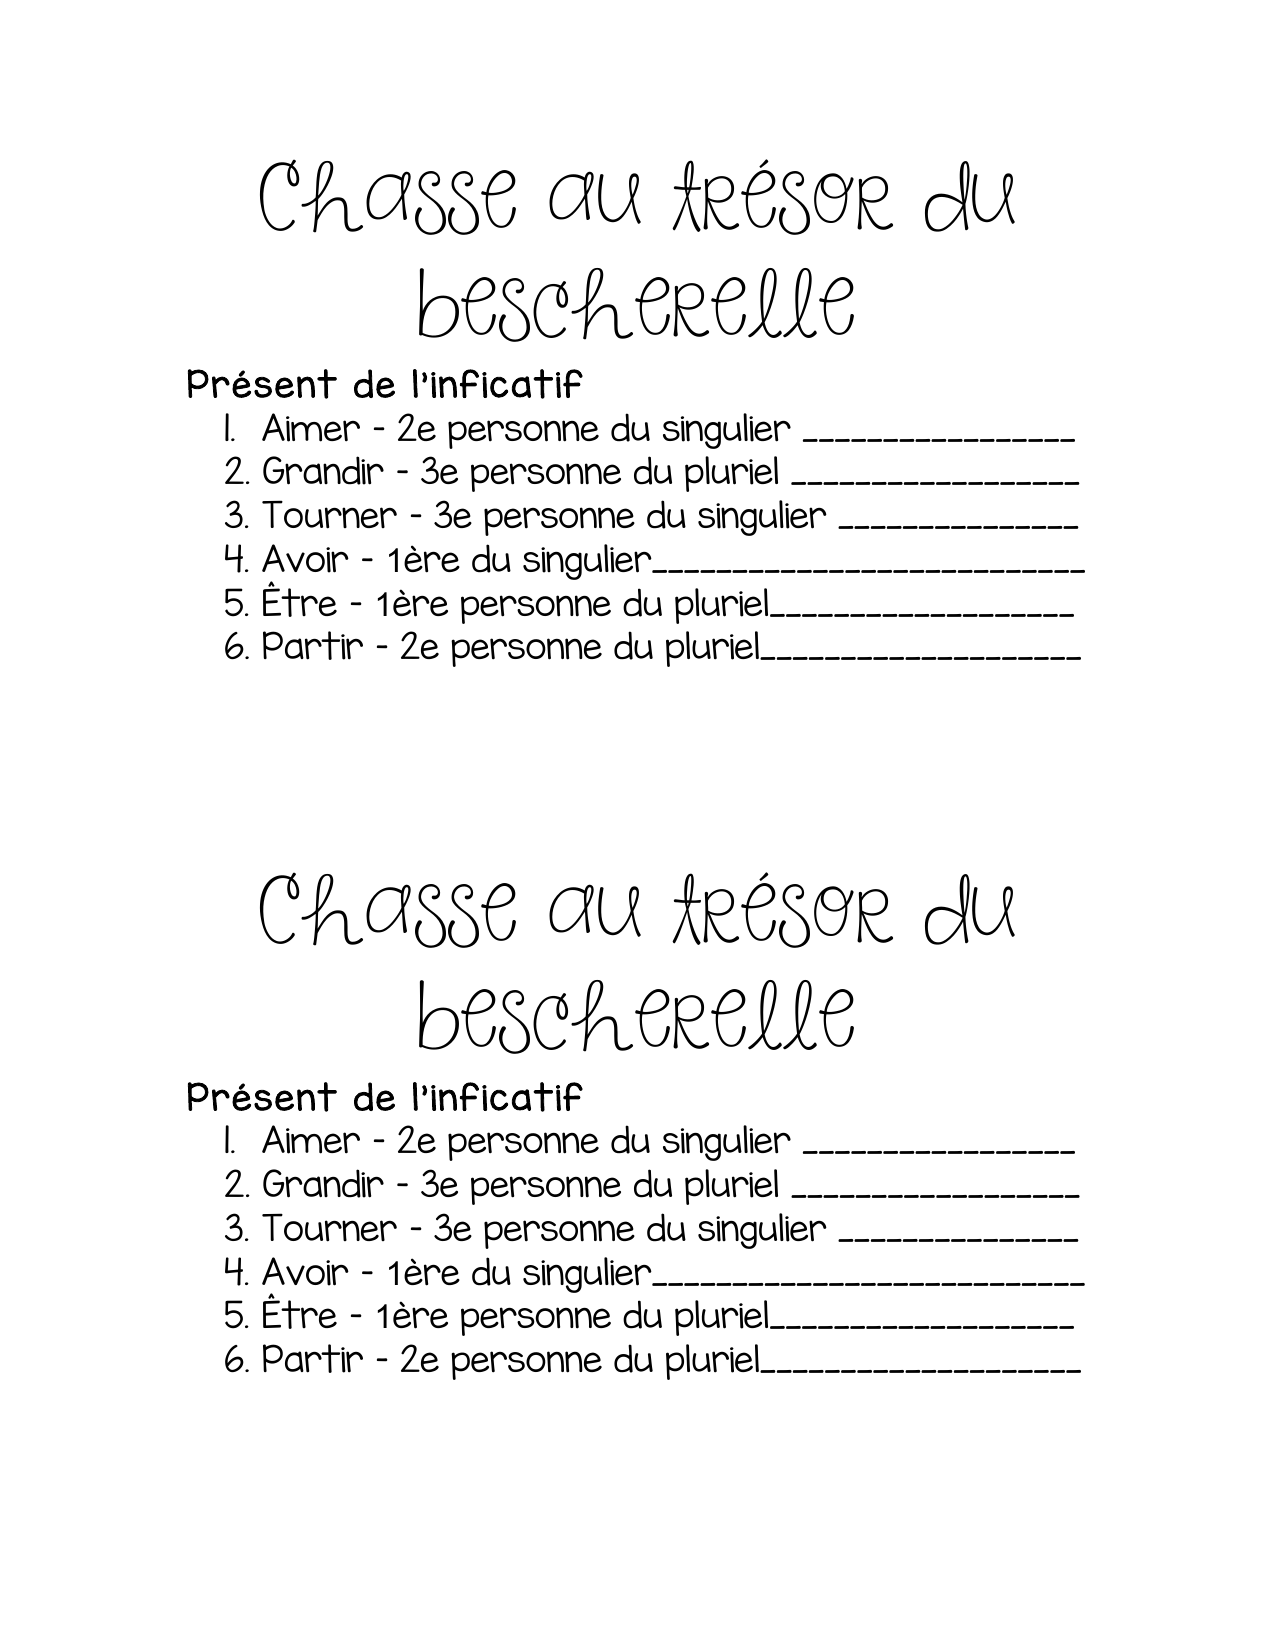 Chasse au tresor du bescherelle Resource Preview